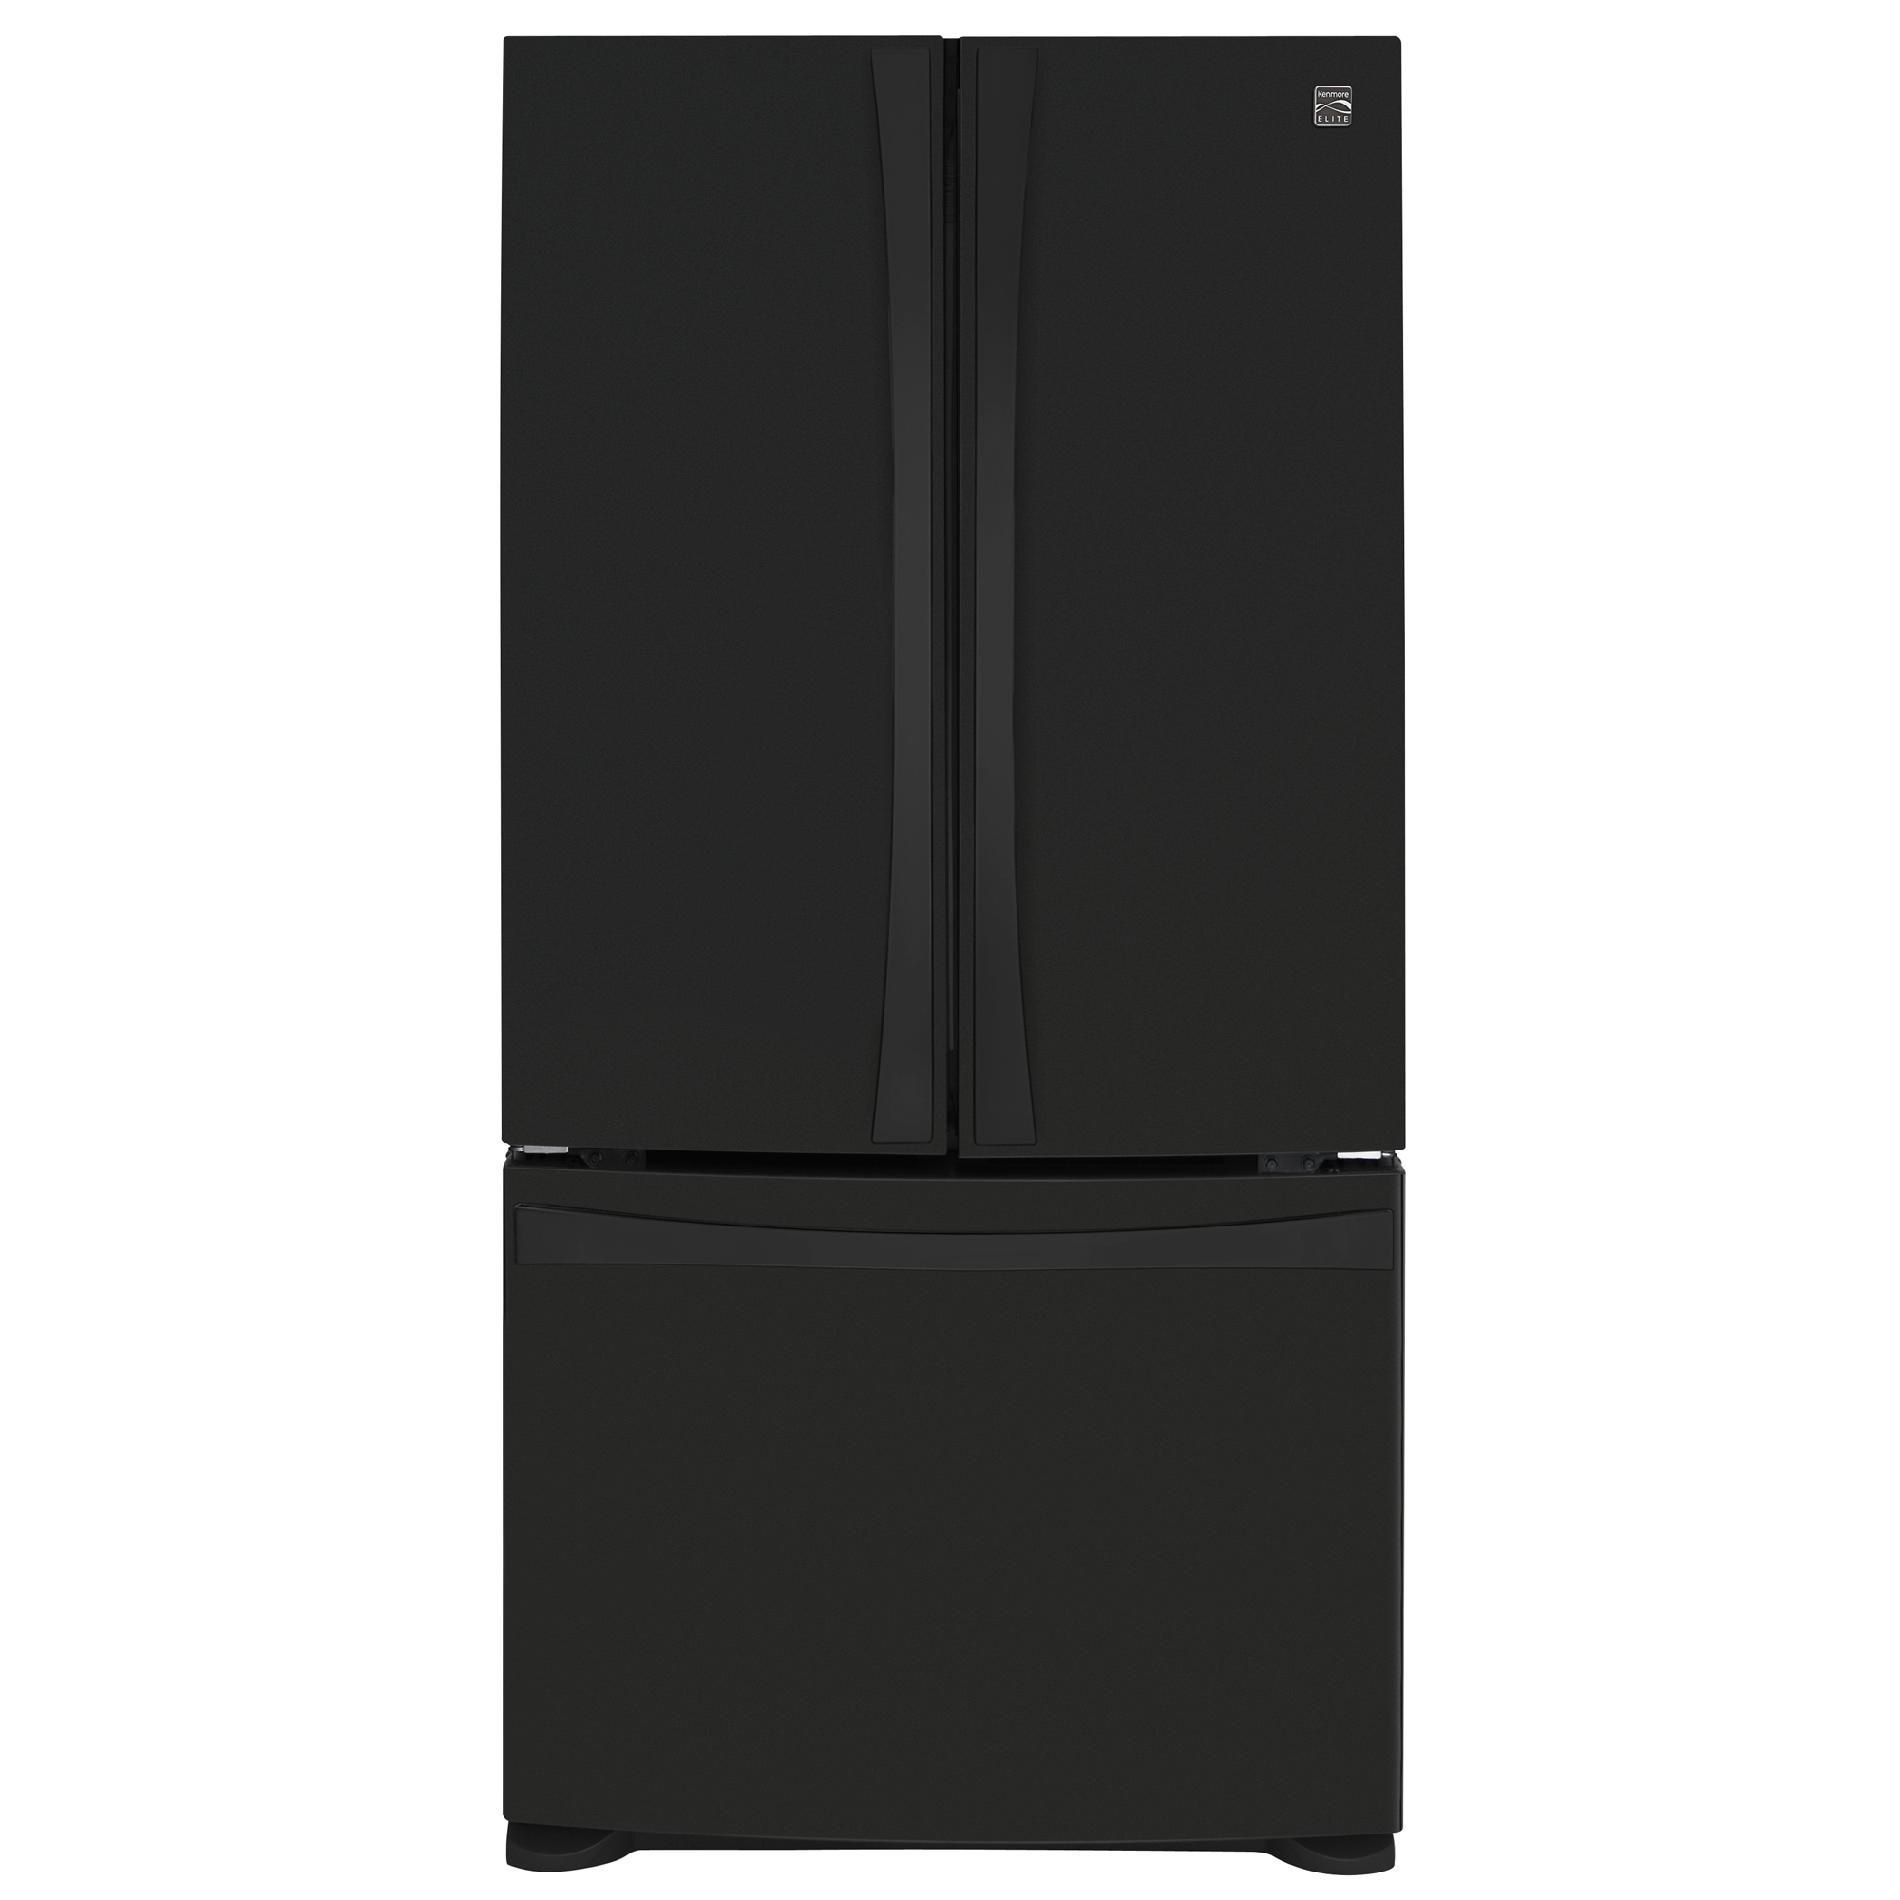 Kenmore Elite  25 cu. ft. French-Door Bottom-Freezer Refrigerator